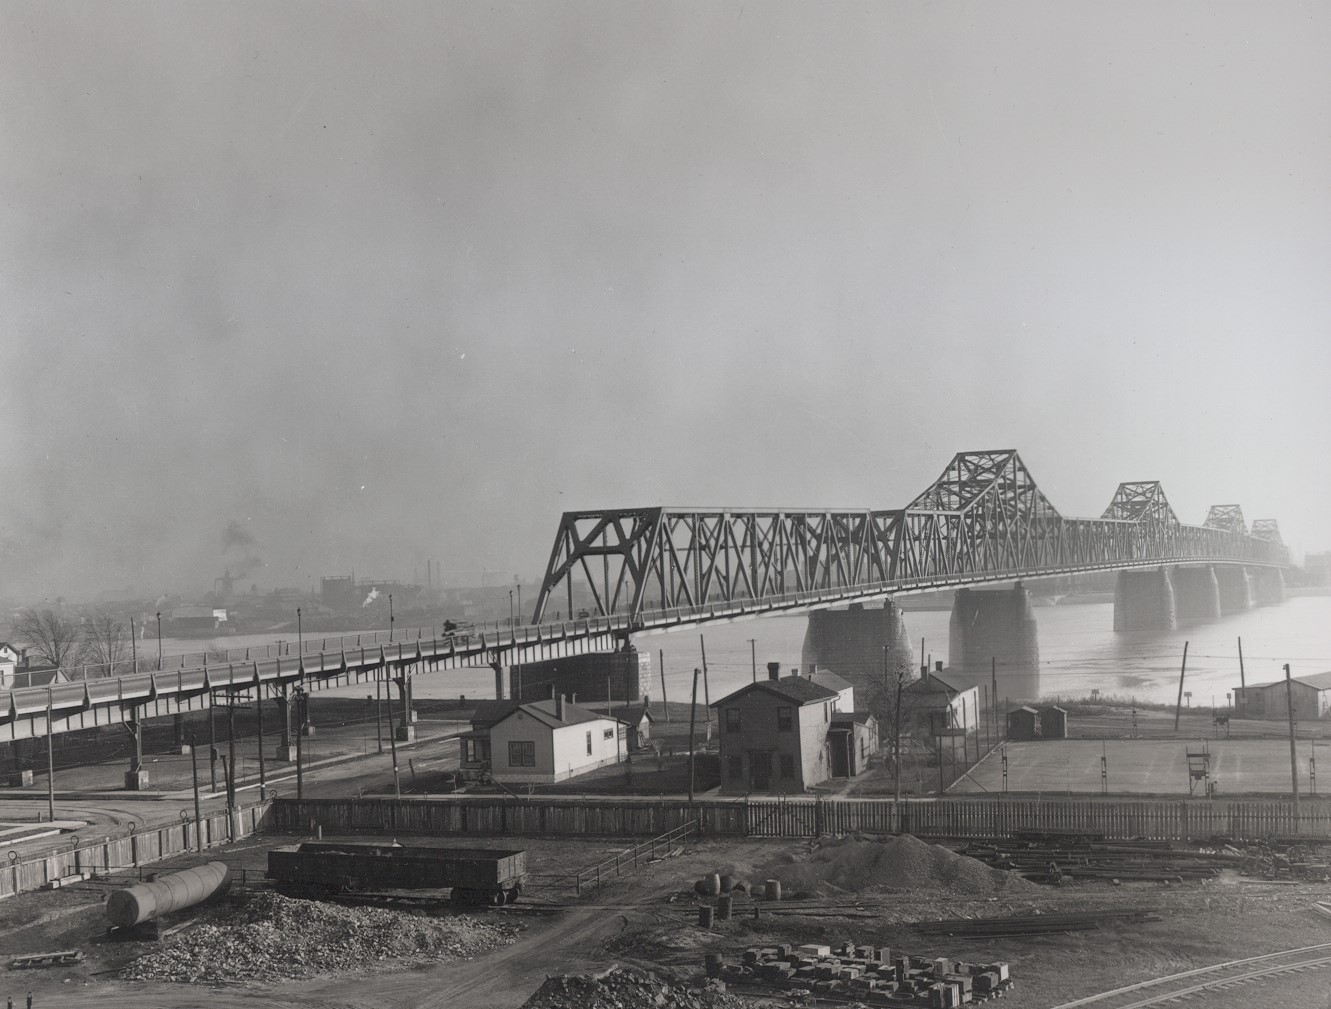 View looking south towards the Second Street Bridge.